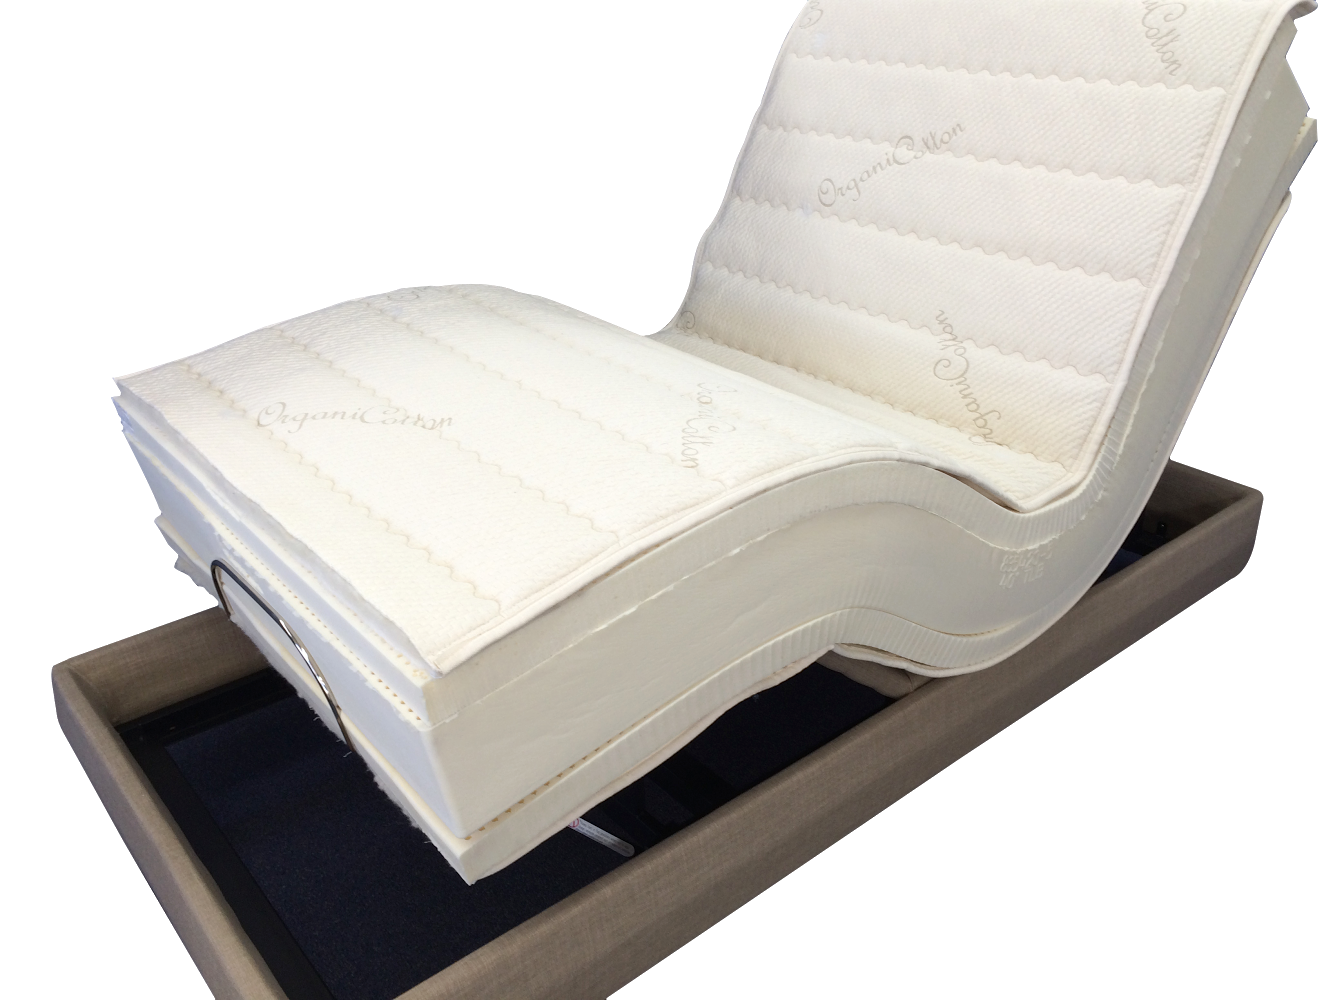 Latexpedic LA Los Angeles Latex Mattress image 15